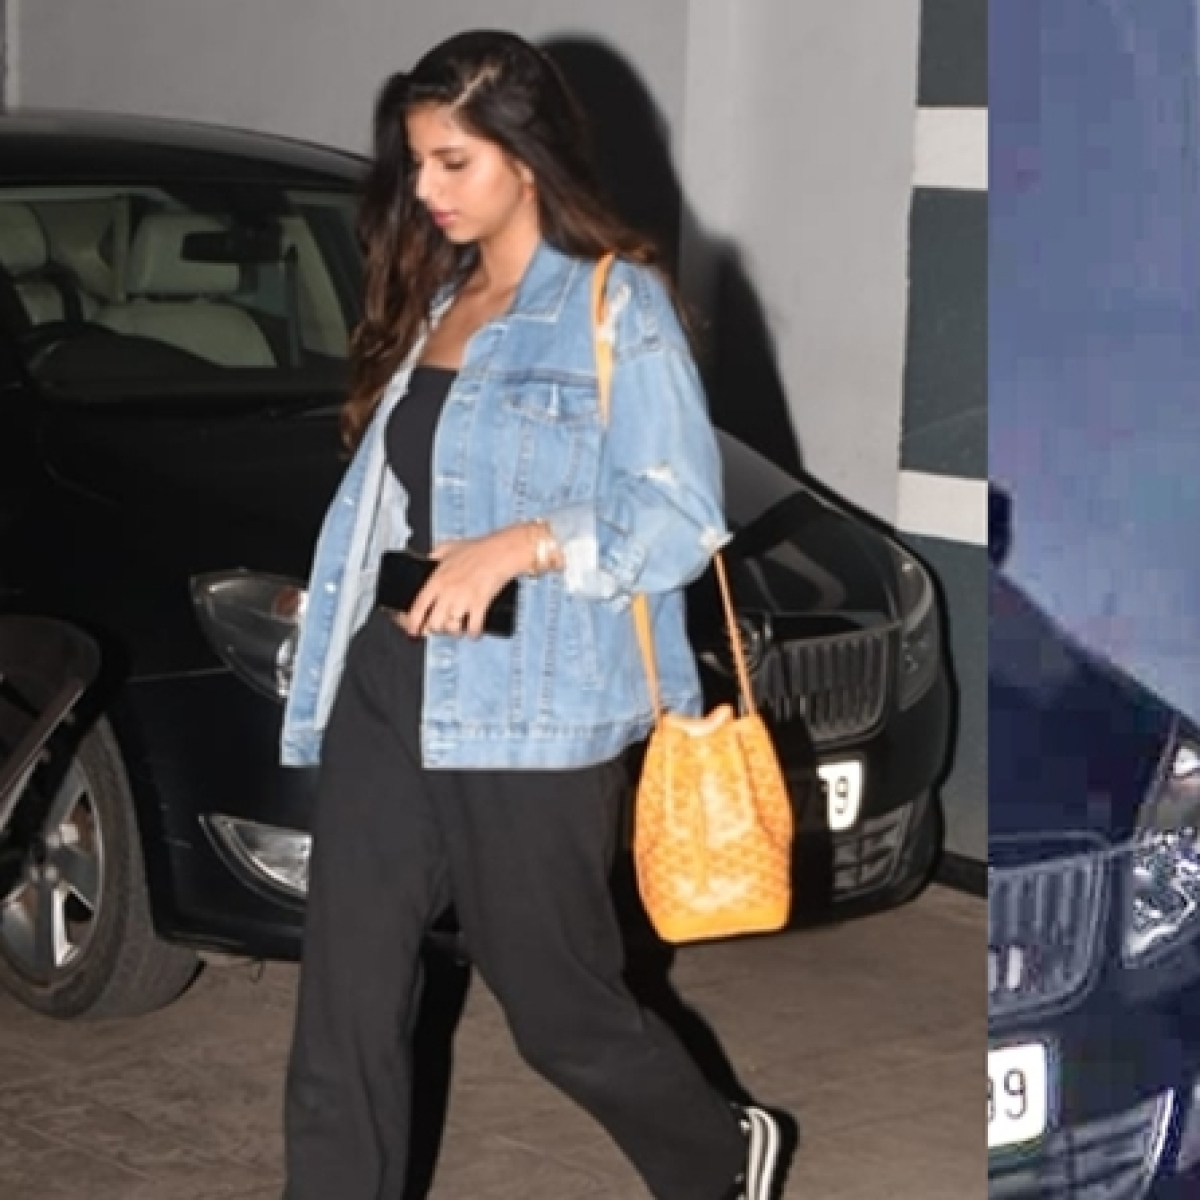 Despite Shah Rukh Khan's absence from Box Office, daughter Suhana flaunts Rs 1.7 lakh bag